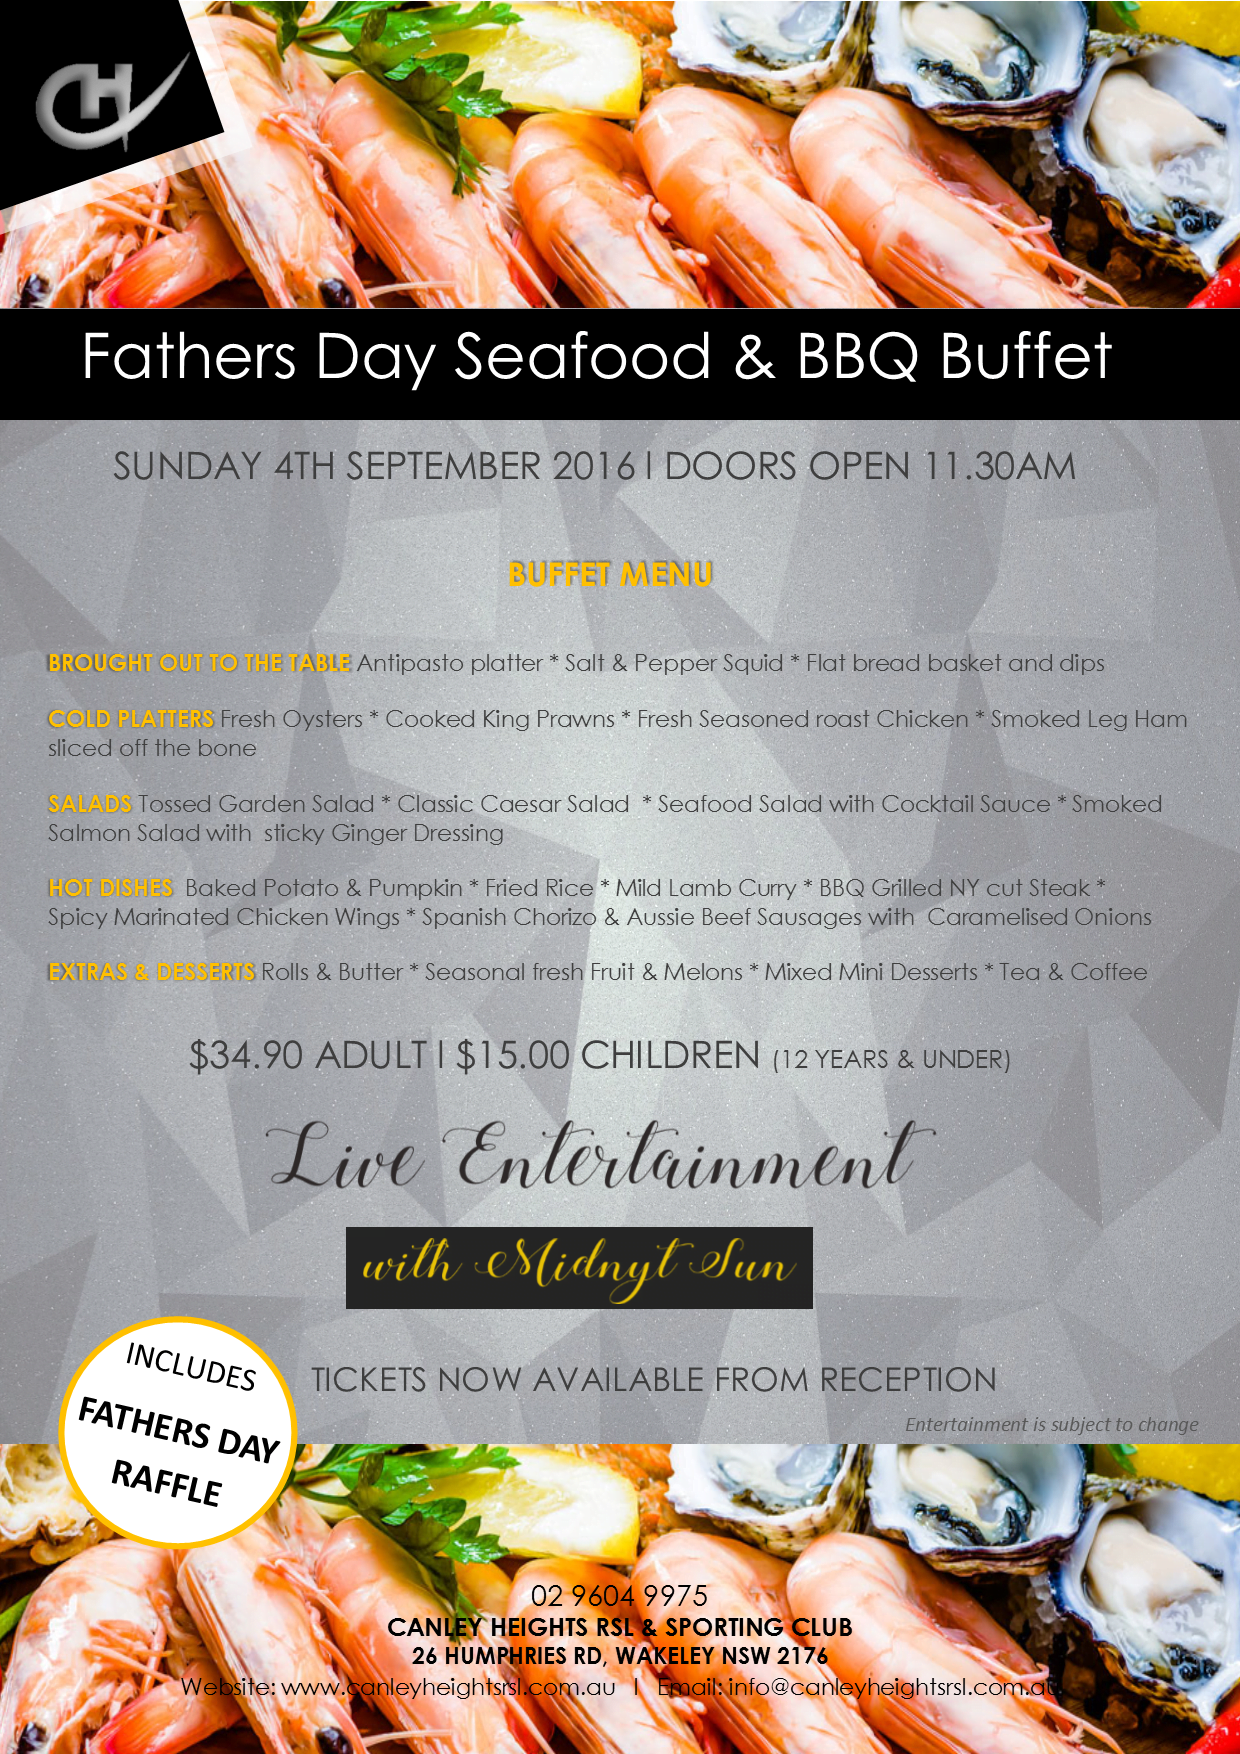 Fathers Day Buffet Canley Heights RSL : Fathers Day 2016 from canleyheightsrsl.com.au size 1240 x 1754 png 4208kB